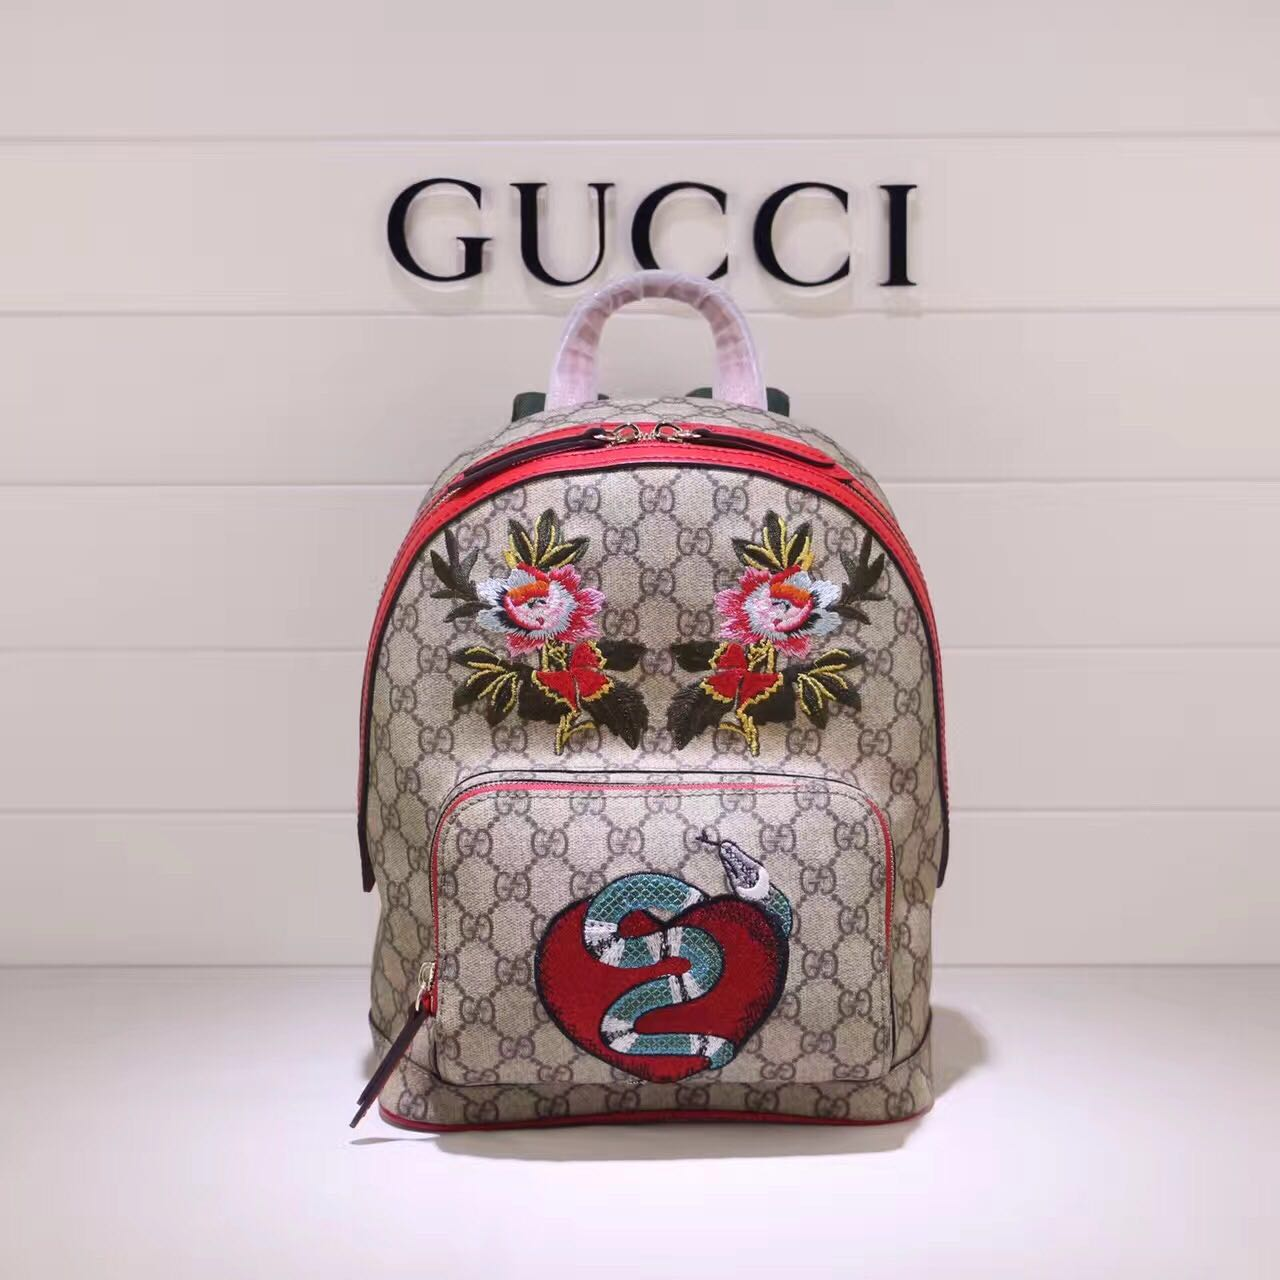 Gucci GG Canvas Backpack 427042 Red